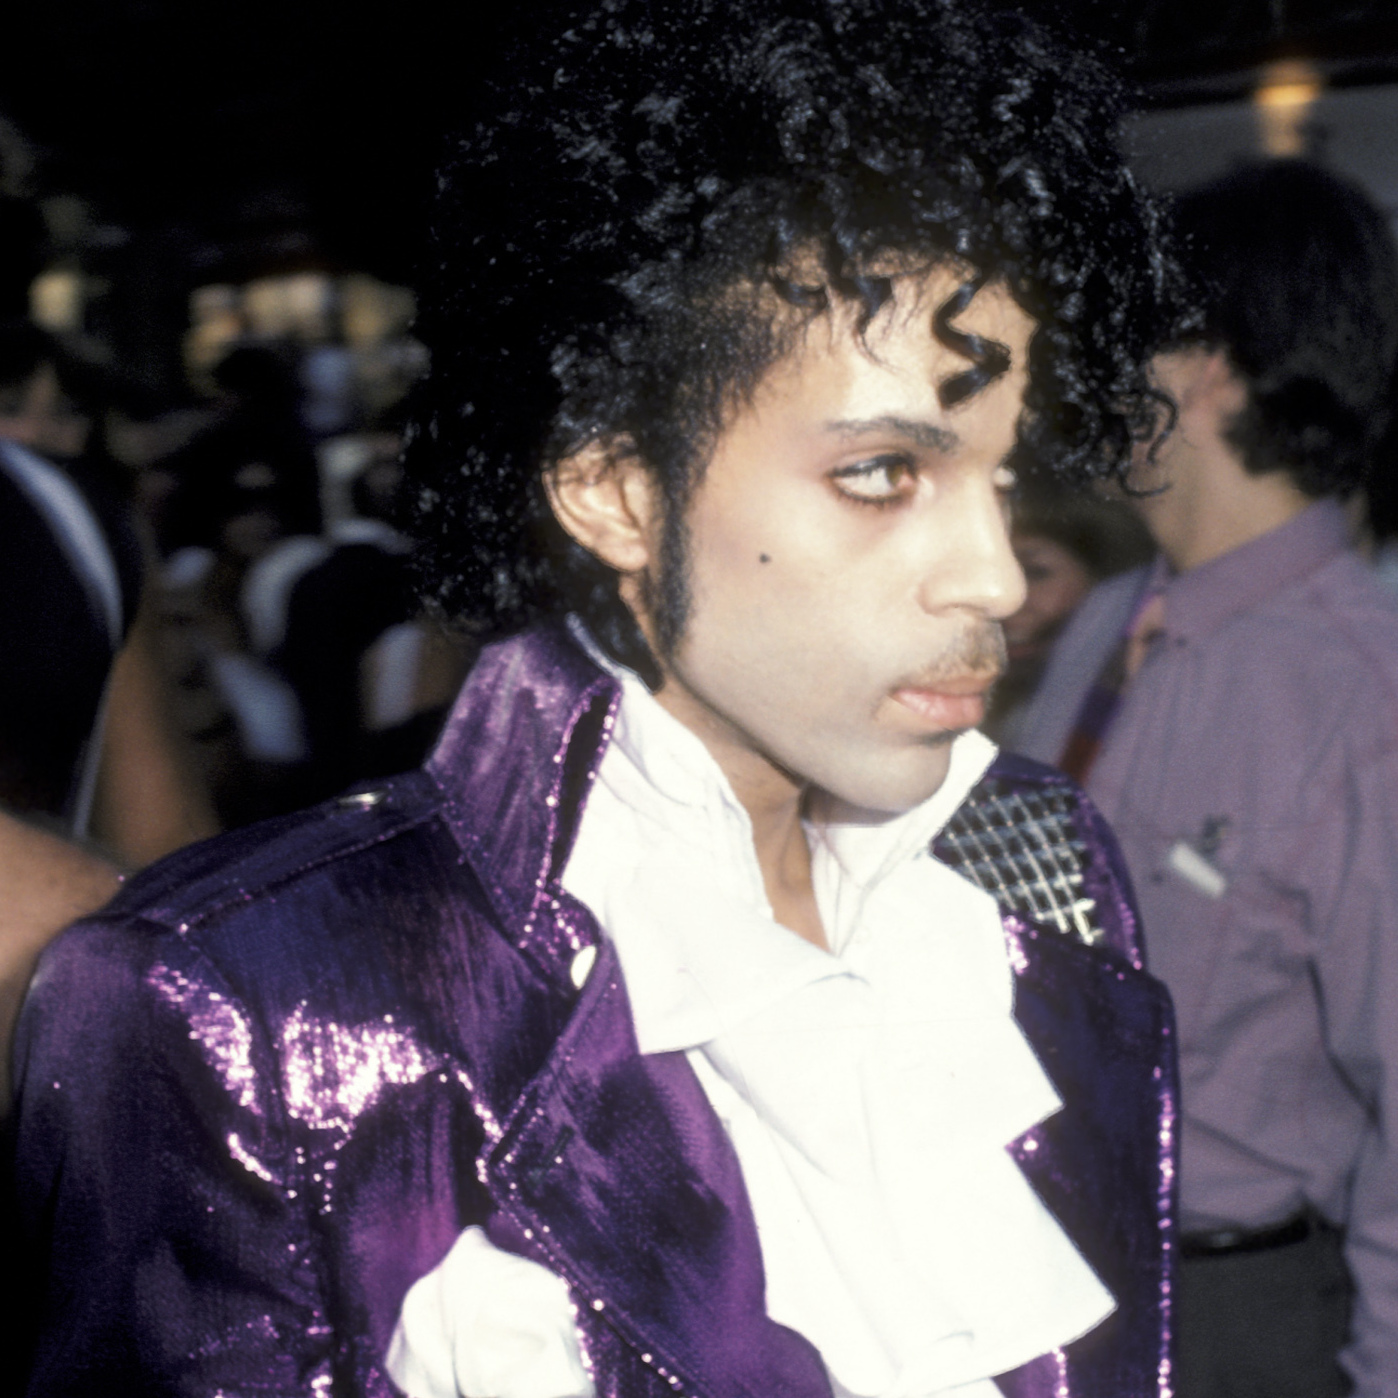 Prince makes his presence felt at the premiere of Purple Rain on July 26, 1984.